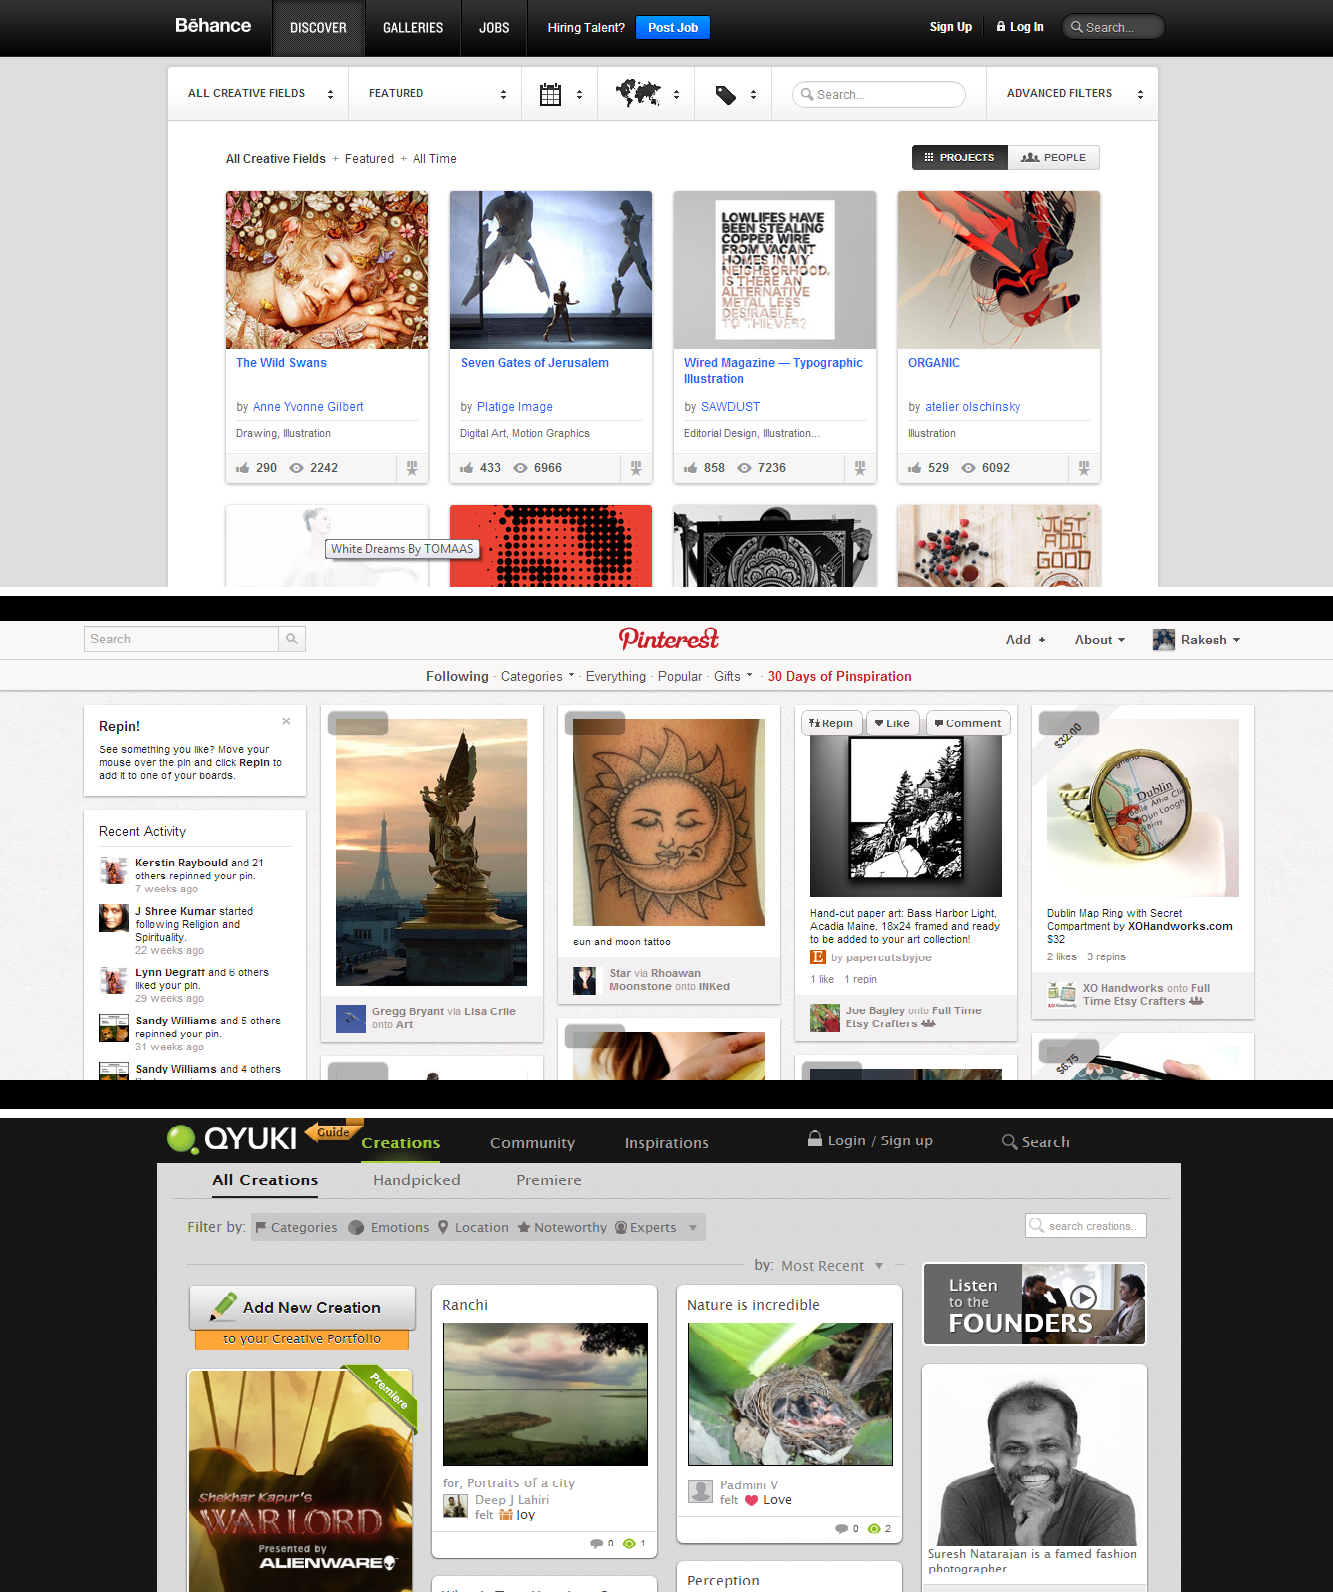 Qyuki Comparision with Behance and Pinterest